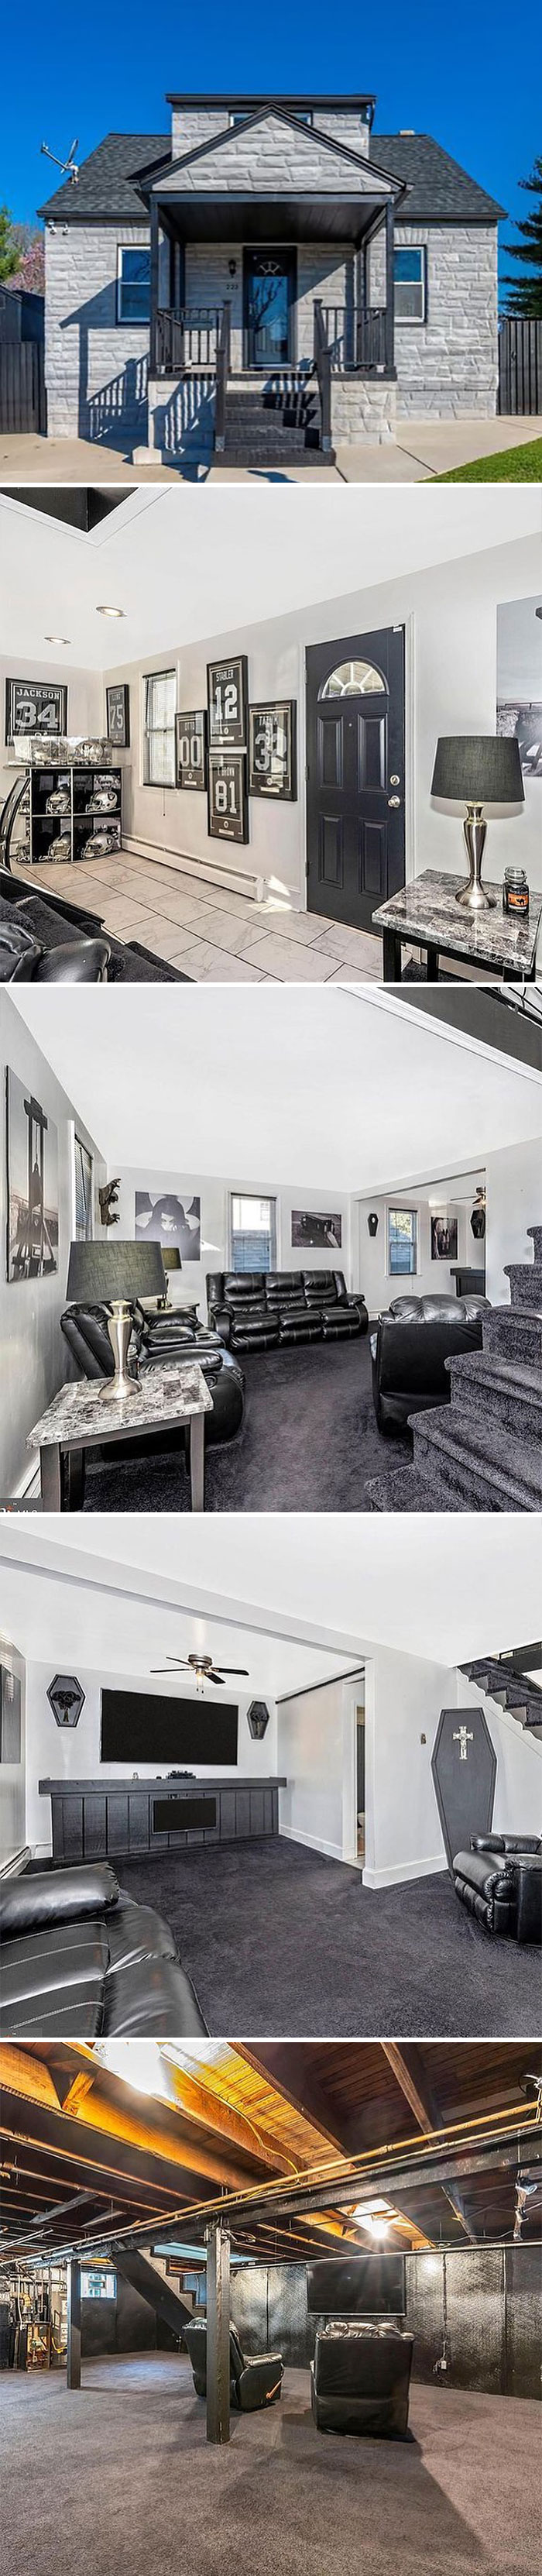 I Know It's #zgwmansionmonday But This Couldn't Wait. $225,000. 1 Bd, 1 Ba. 1,540 Sf